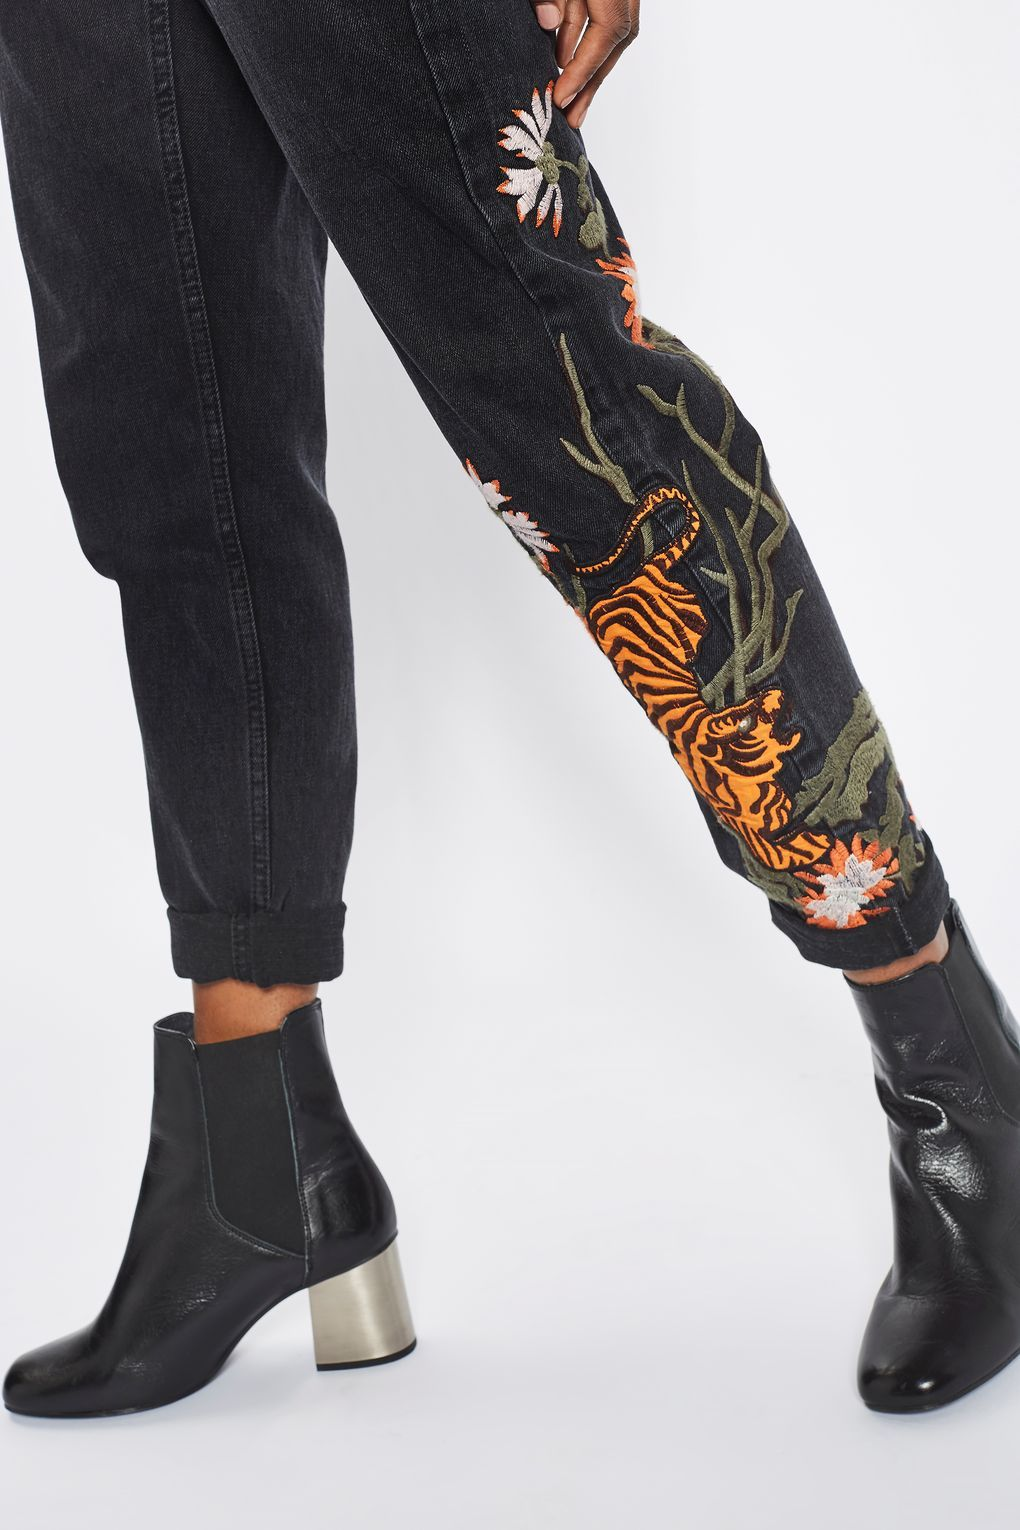 MOTO Tiger Embroidered Mom Jeans Jeans Clothing